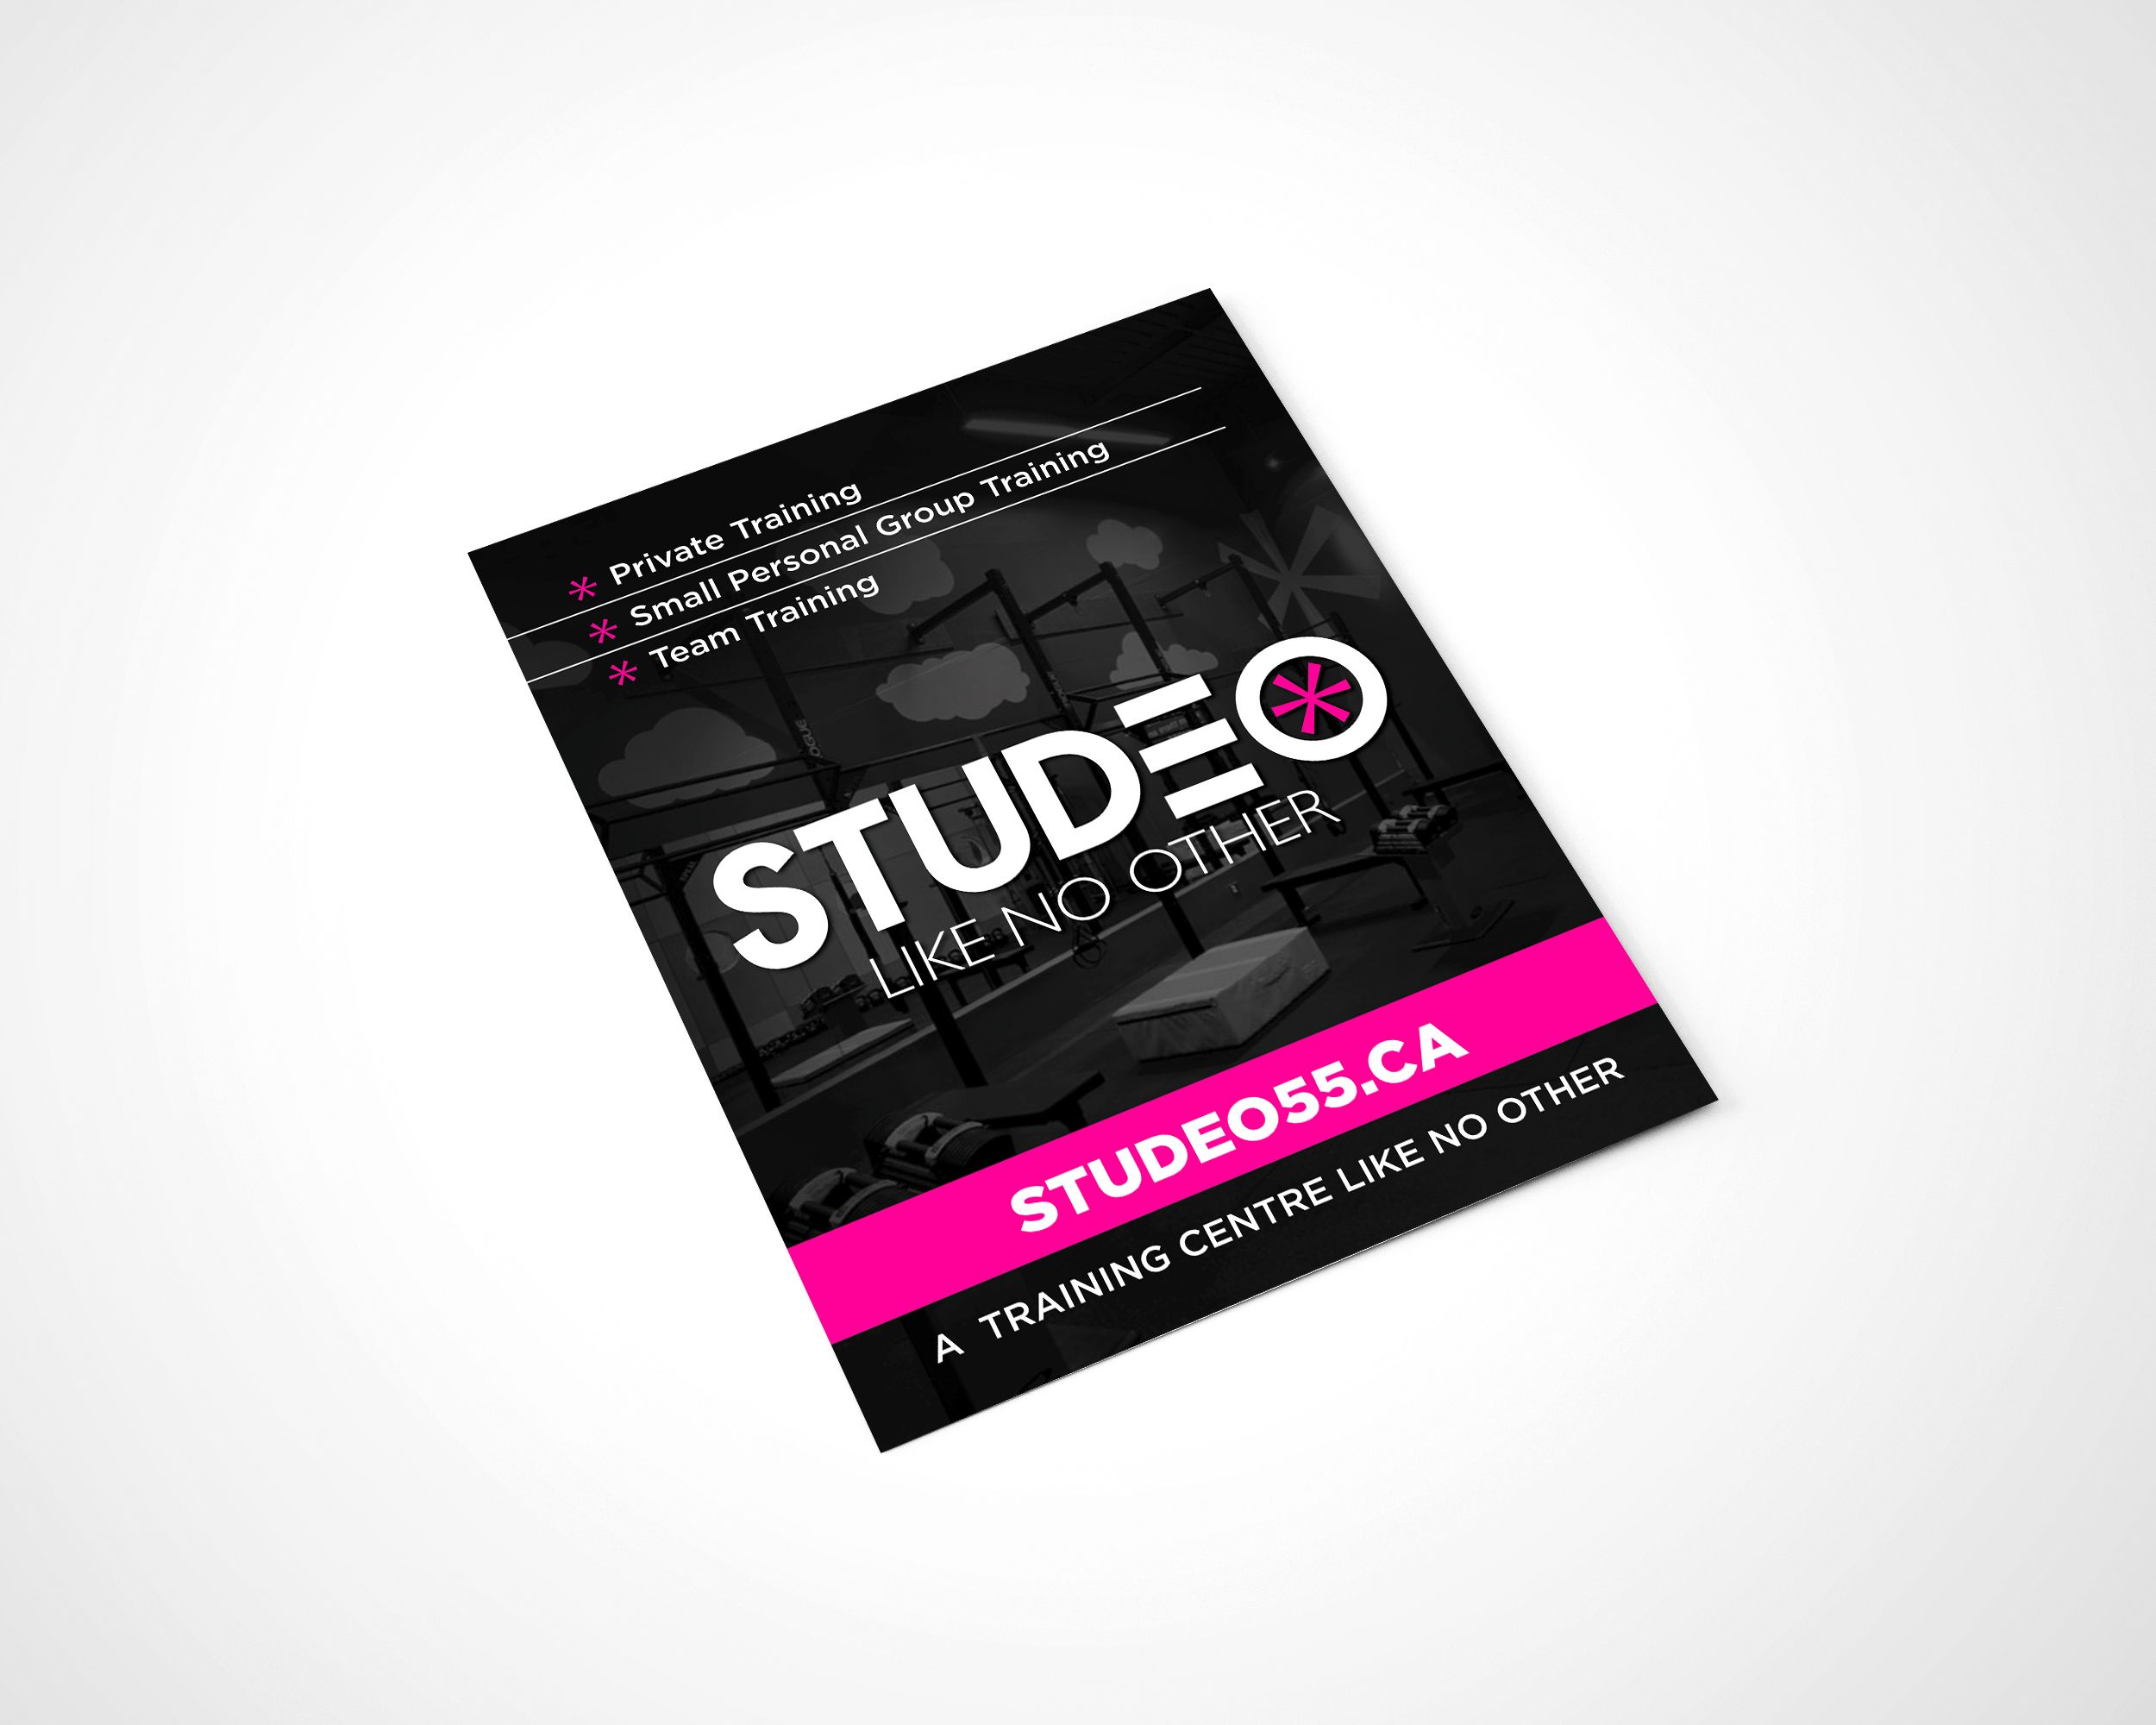 Studeo Gyms Vancvouer Marketing Flyer  X Post Card Super